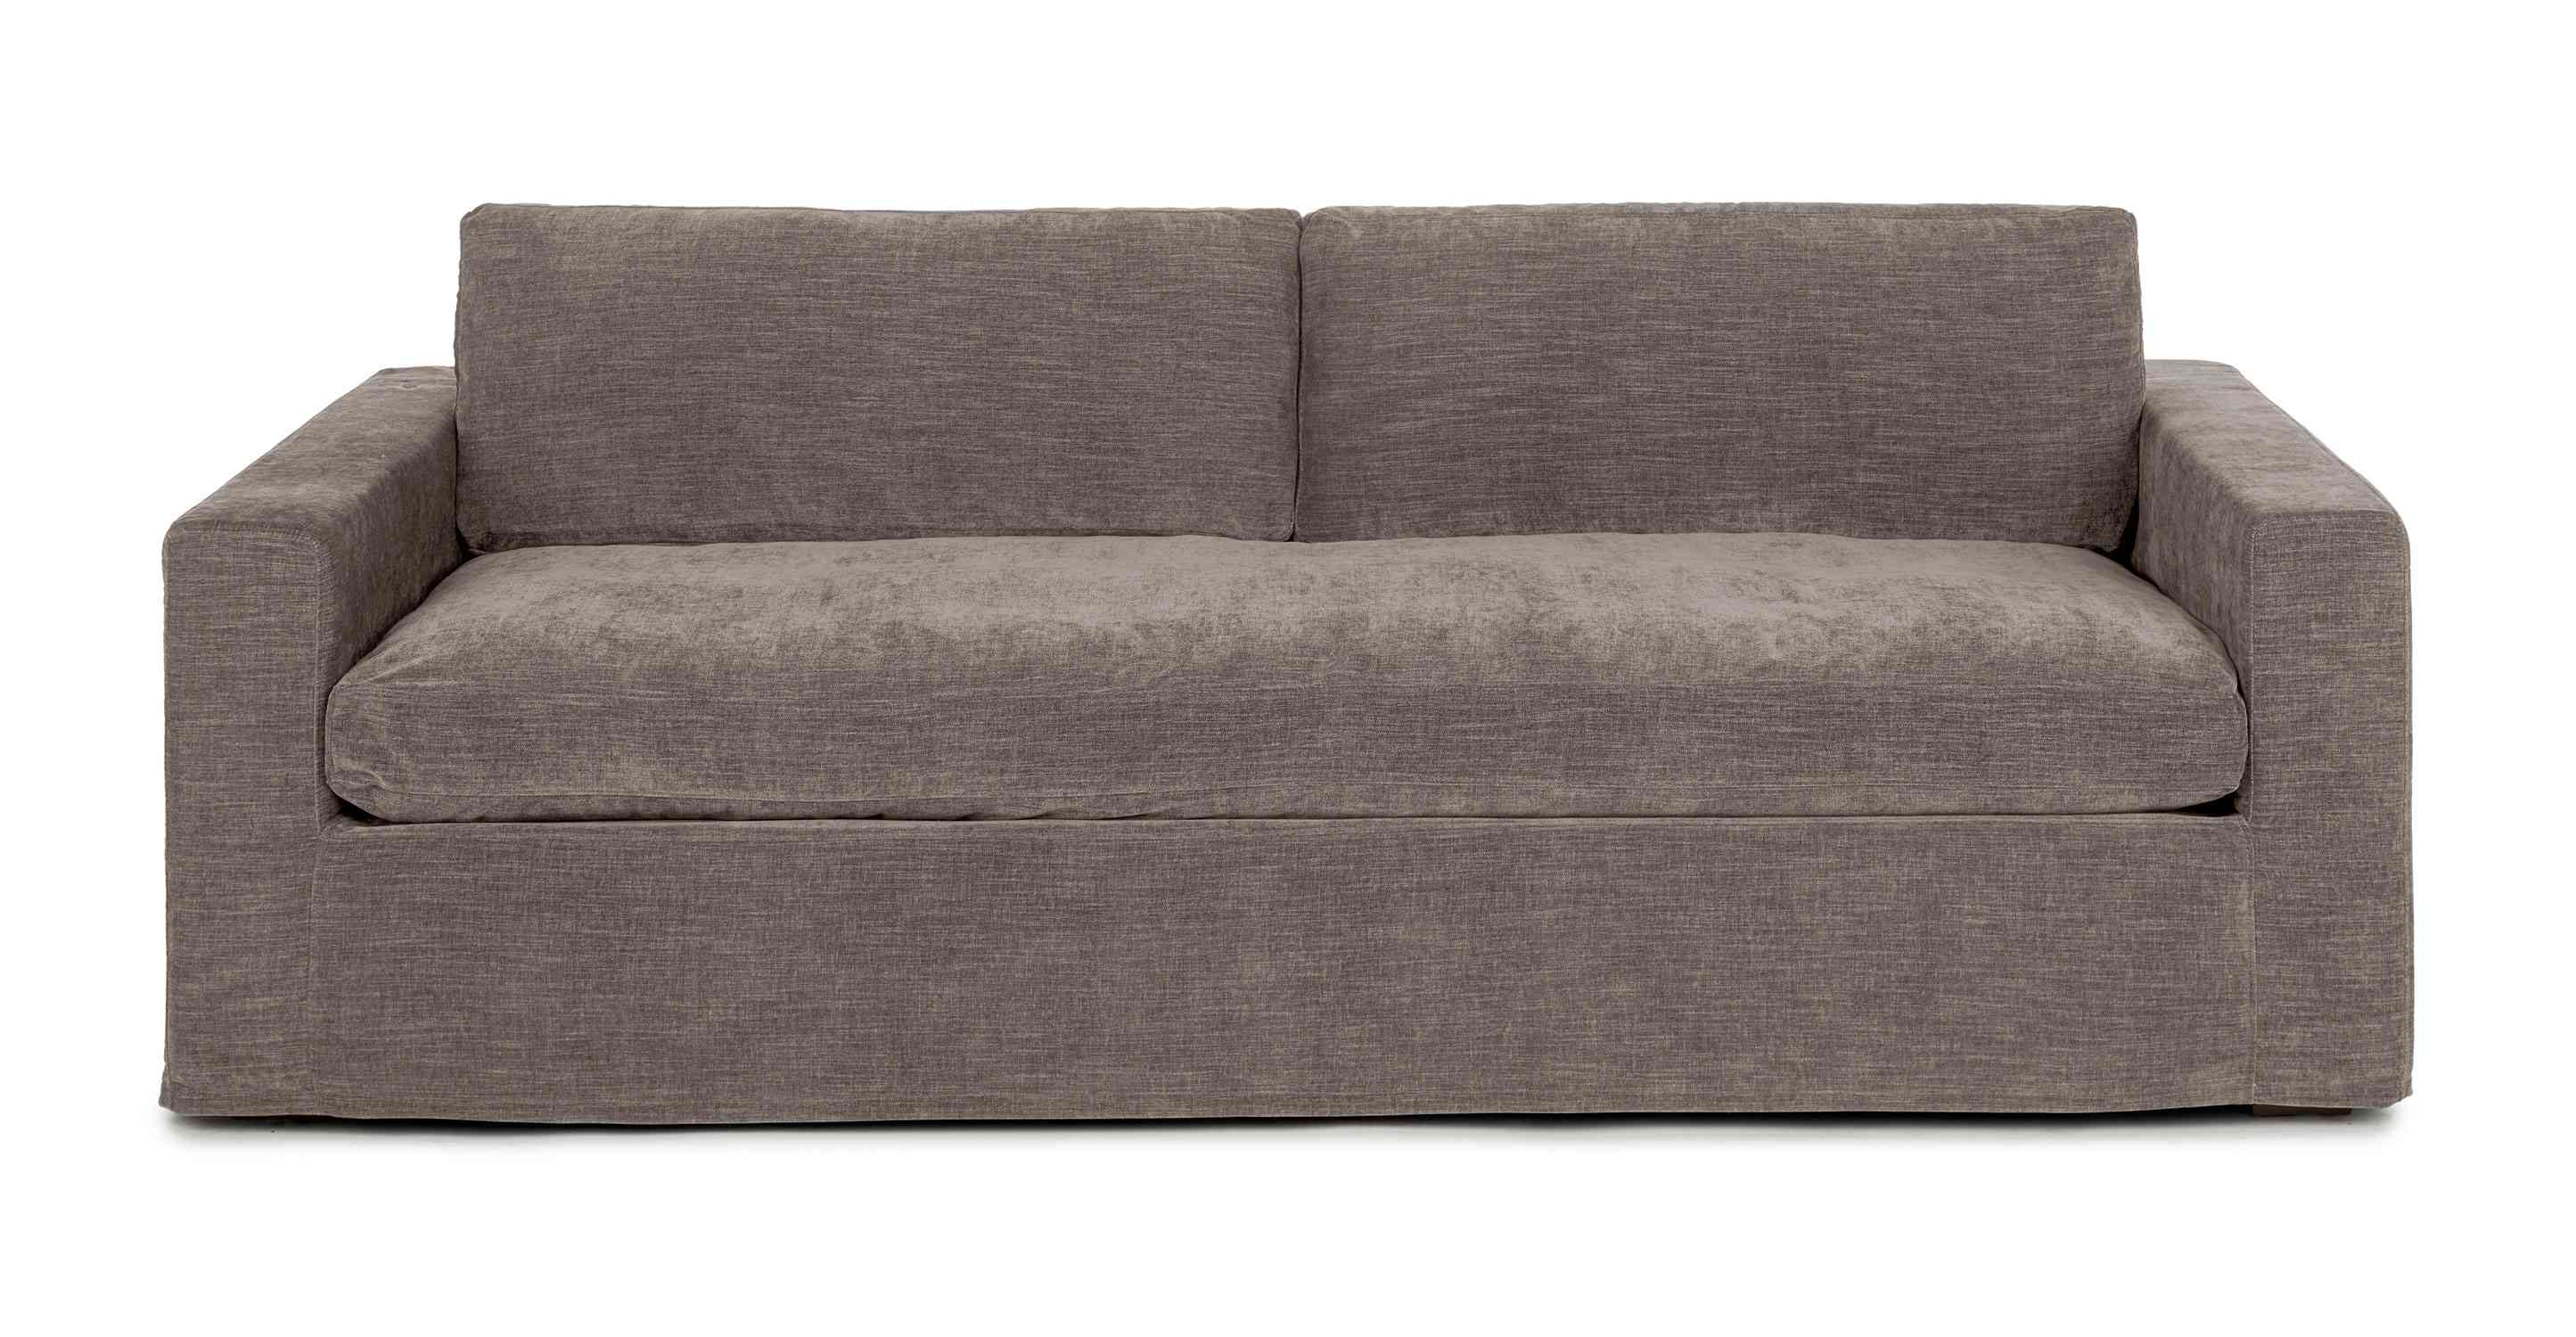 Article Alzey Slipcovered Sofa